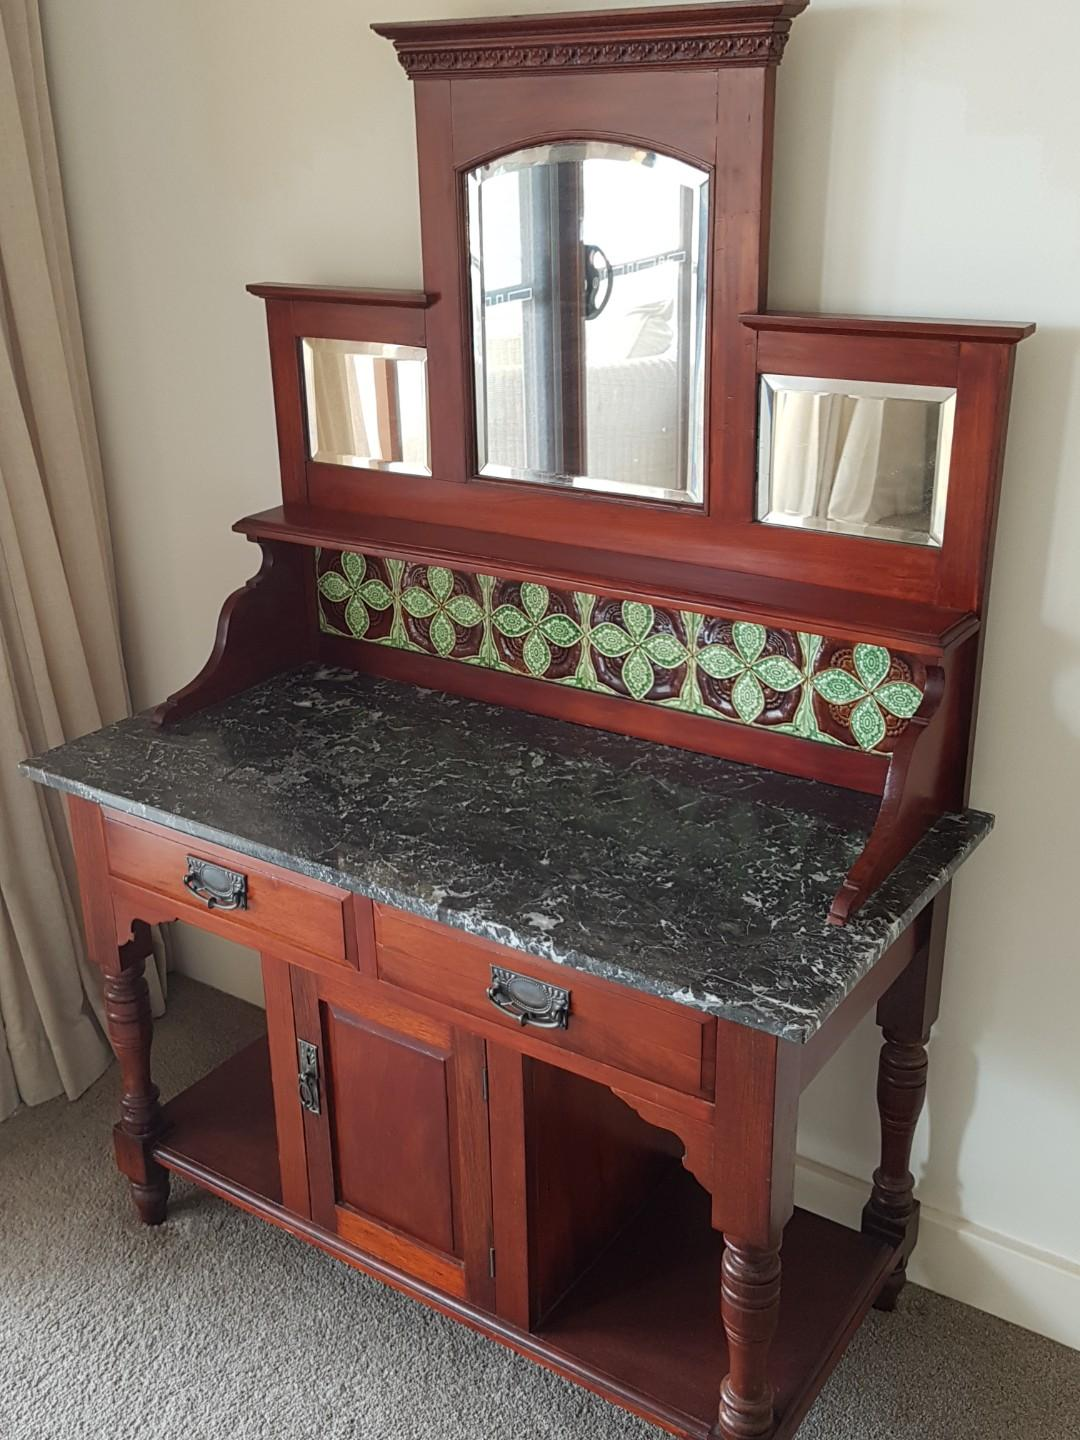 ANTIQUE WASHSTAND CIRCA 1900 WITH STUNNING GREEN MARBLE TOP & GREEN BACK TILES - REDUCED